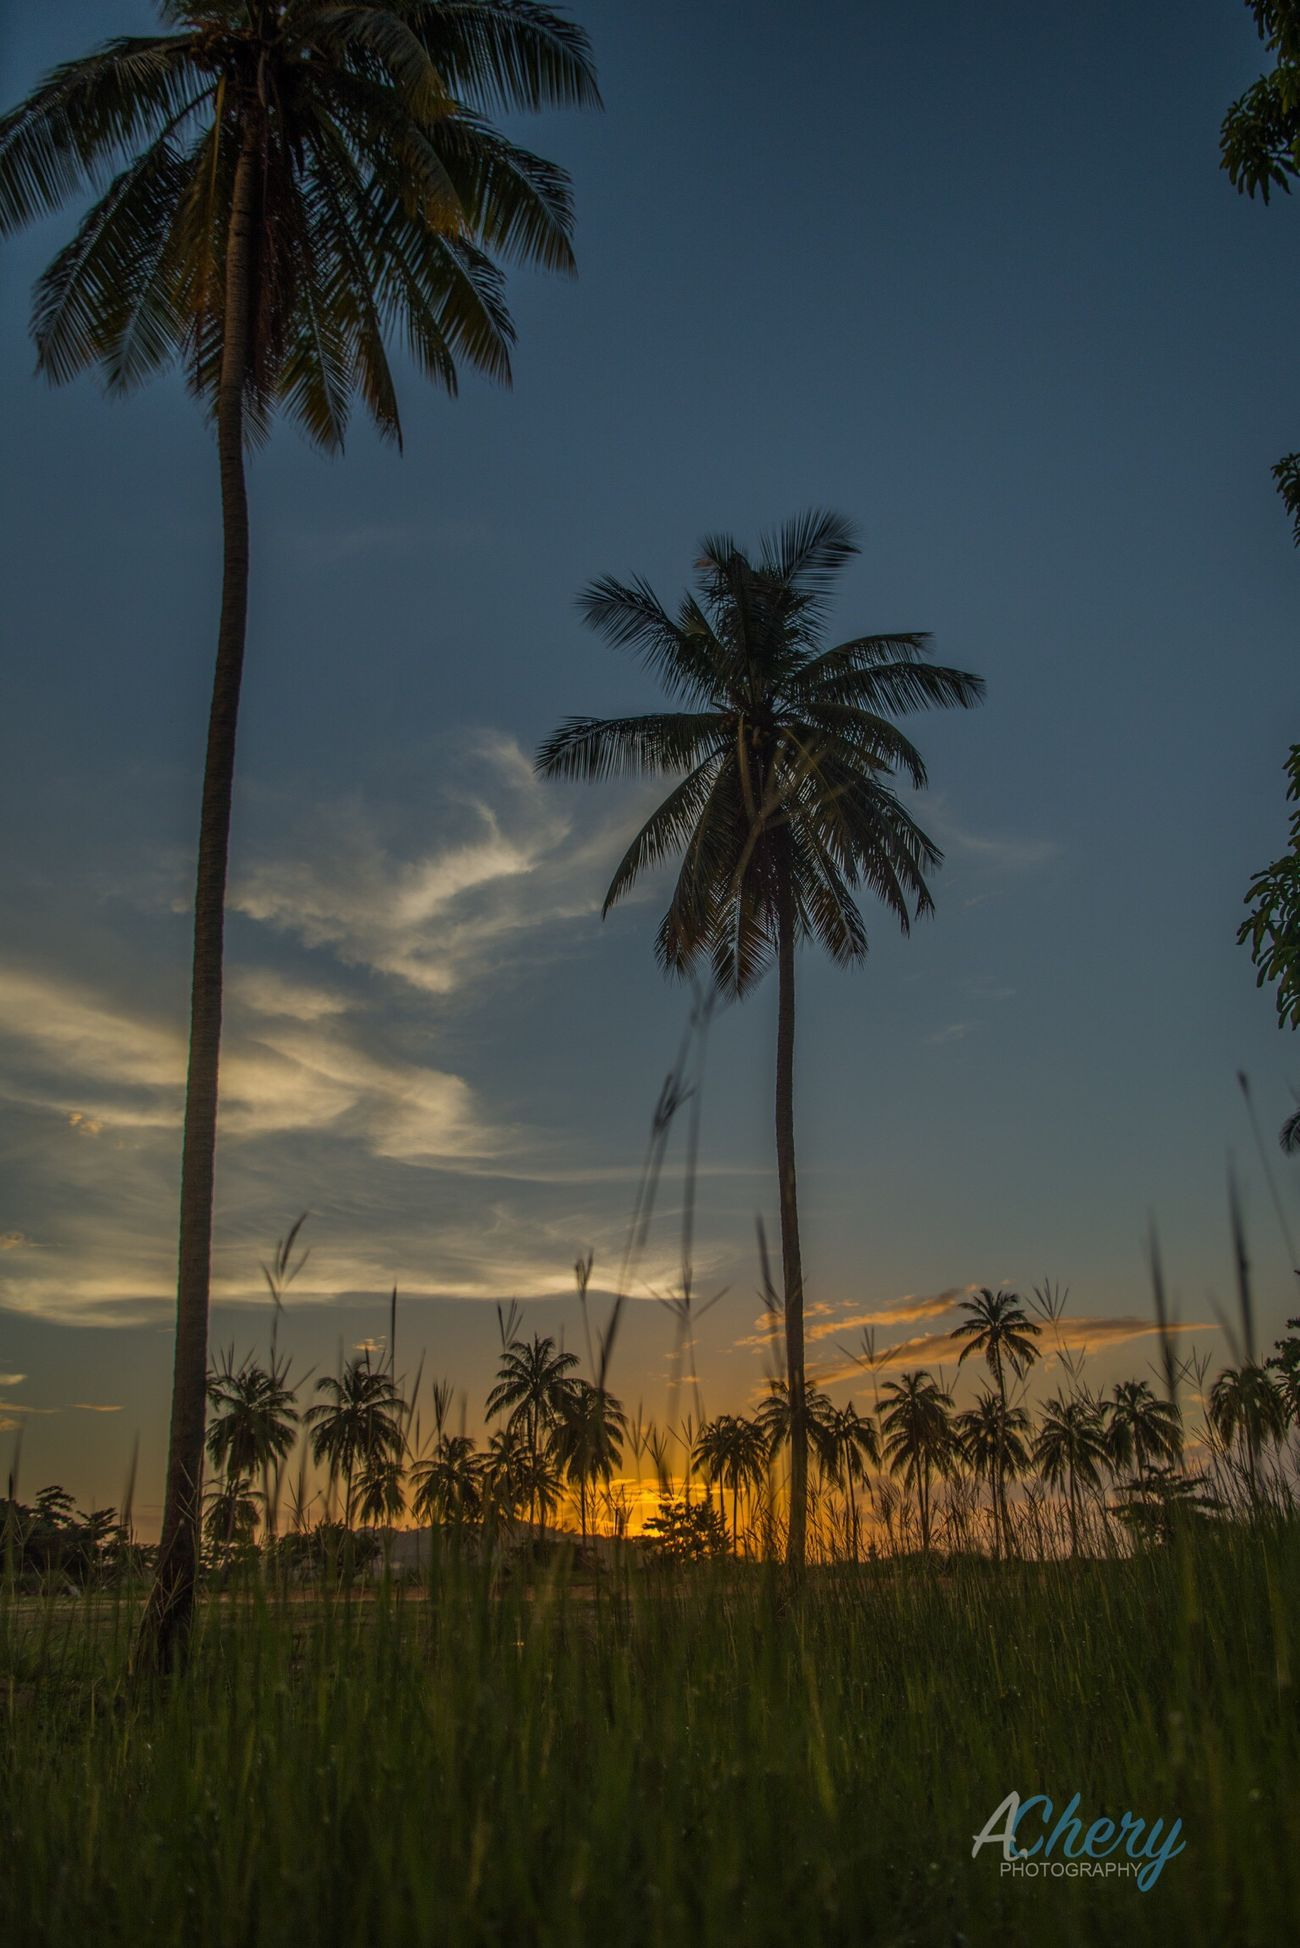 I'll forever be chasing after you! Palm Tree Tree Sky Sunset Beauty In Nature Nature Scenics Tranquility Tranquil Scene Outdoors Landscape Palm Frond Travel Destinations Silhouette Dramatic Sky Dusk saintlucia